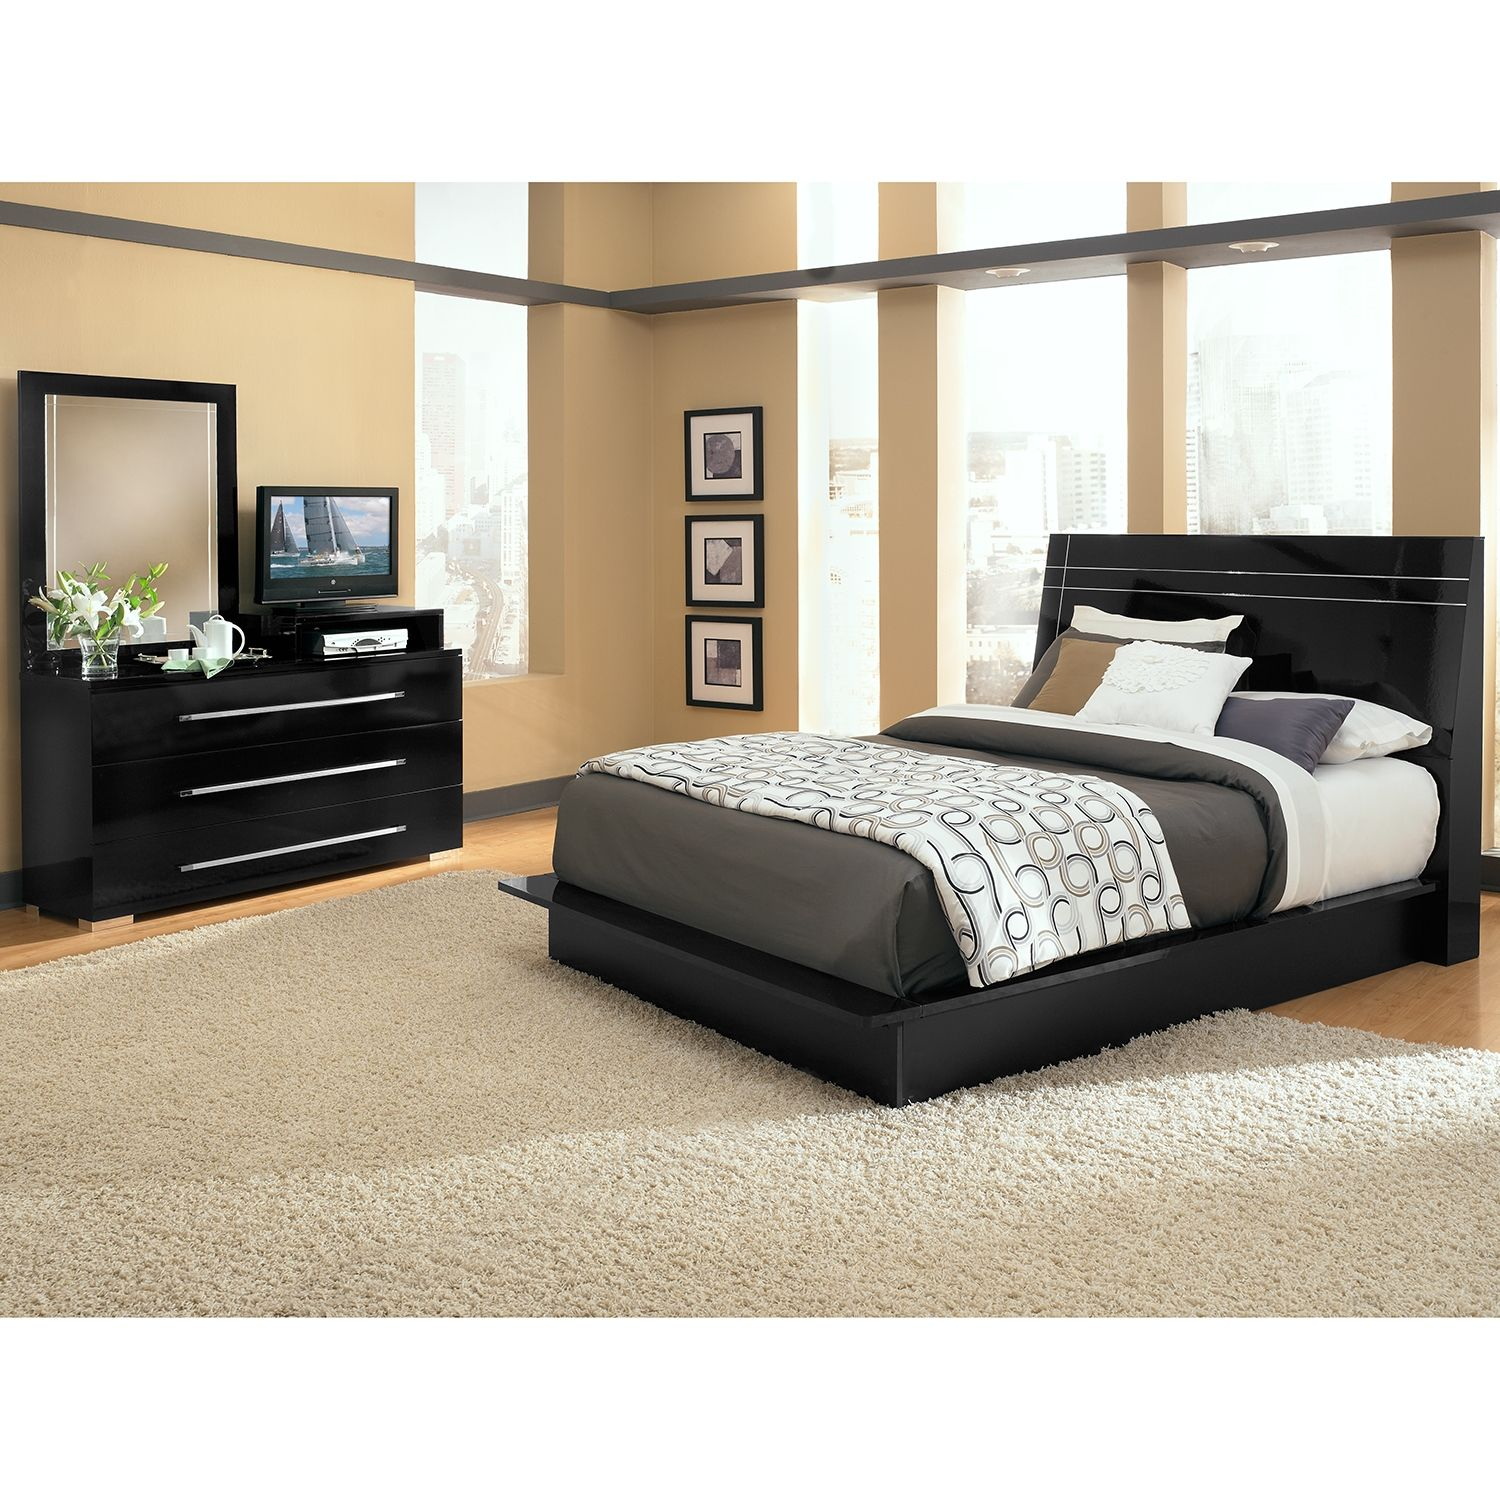 Wonderful Dimora Black II 5 Pc. Queen Bedroom | Value City Furniture